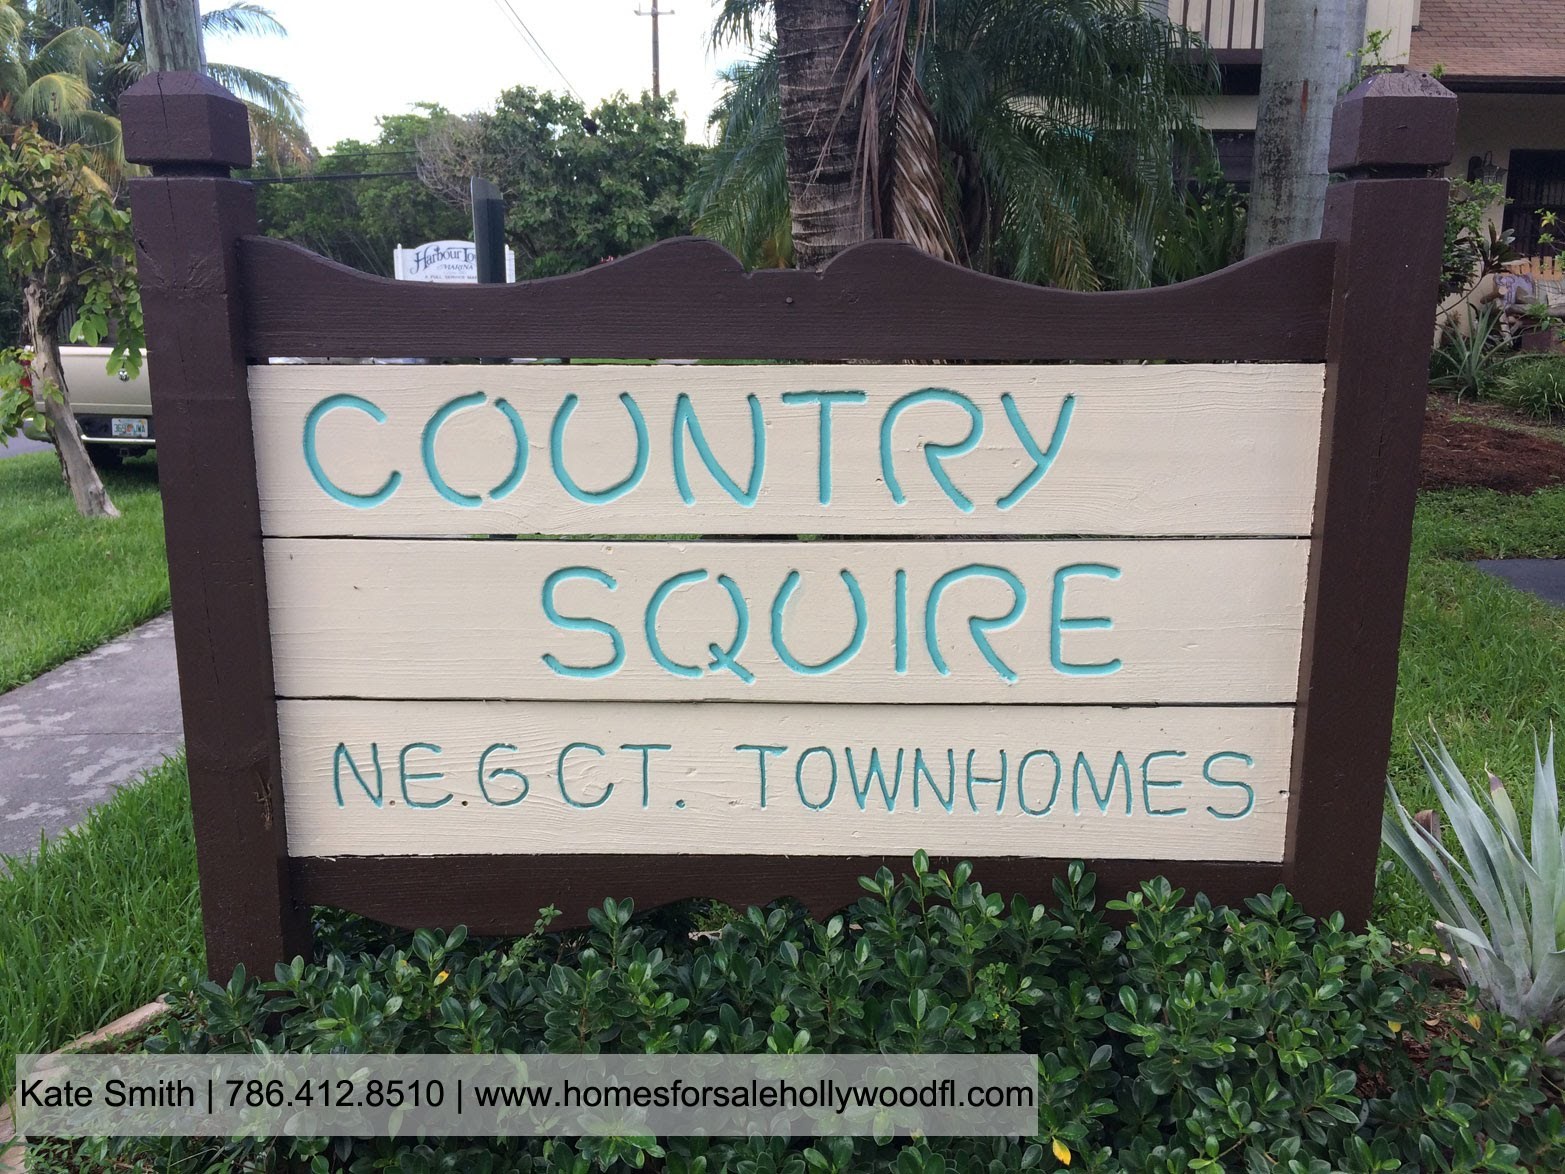 Country Squire Townhomes Dania Beach, FL 33004. Find Today's Country Squire Townhomes, Dania Beach, FL housing market